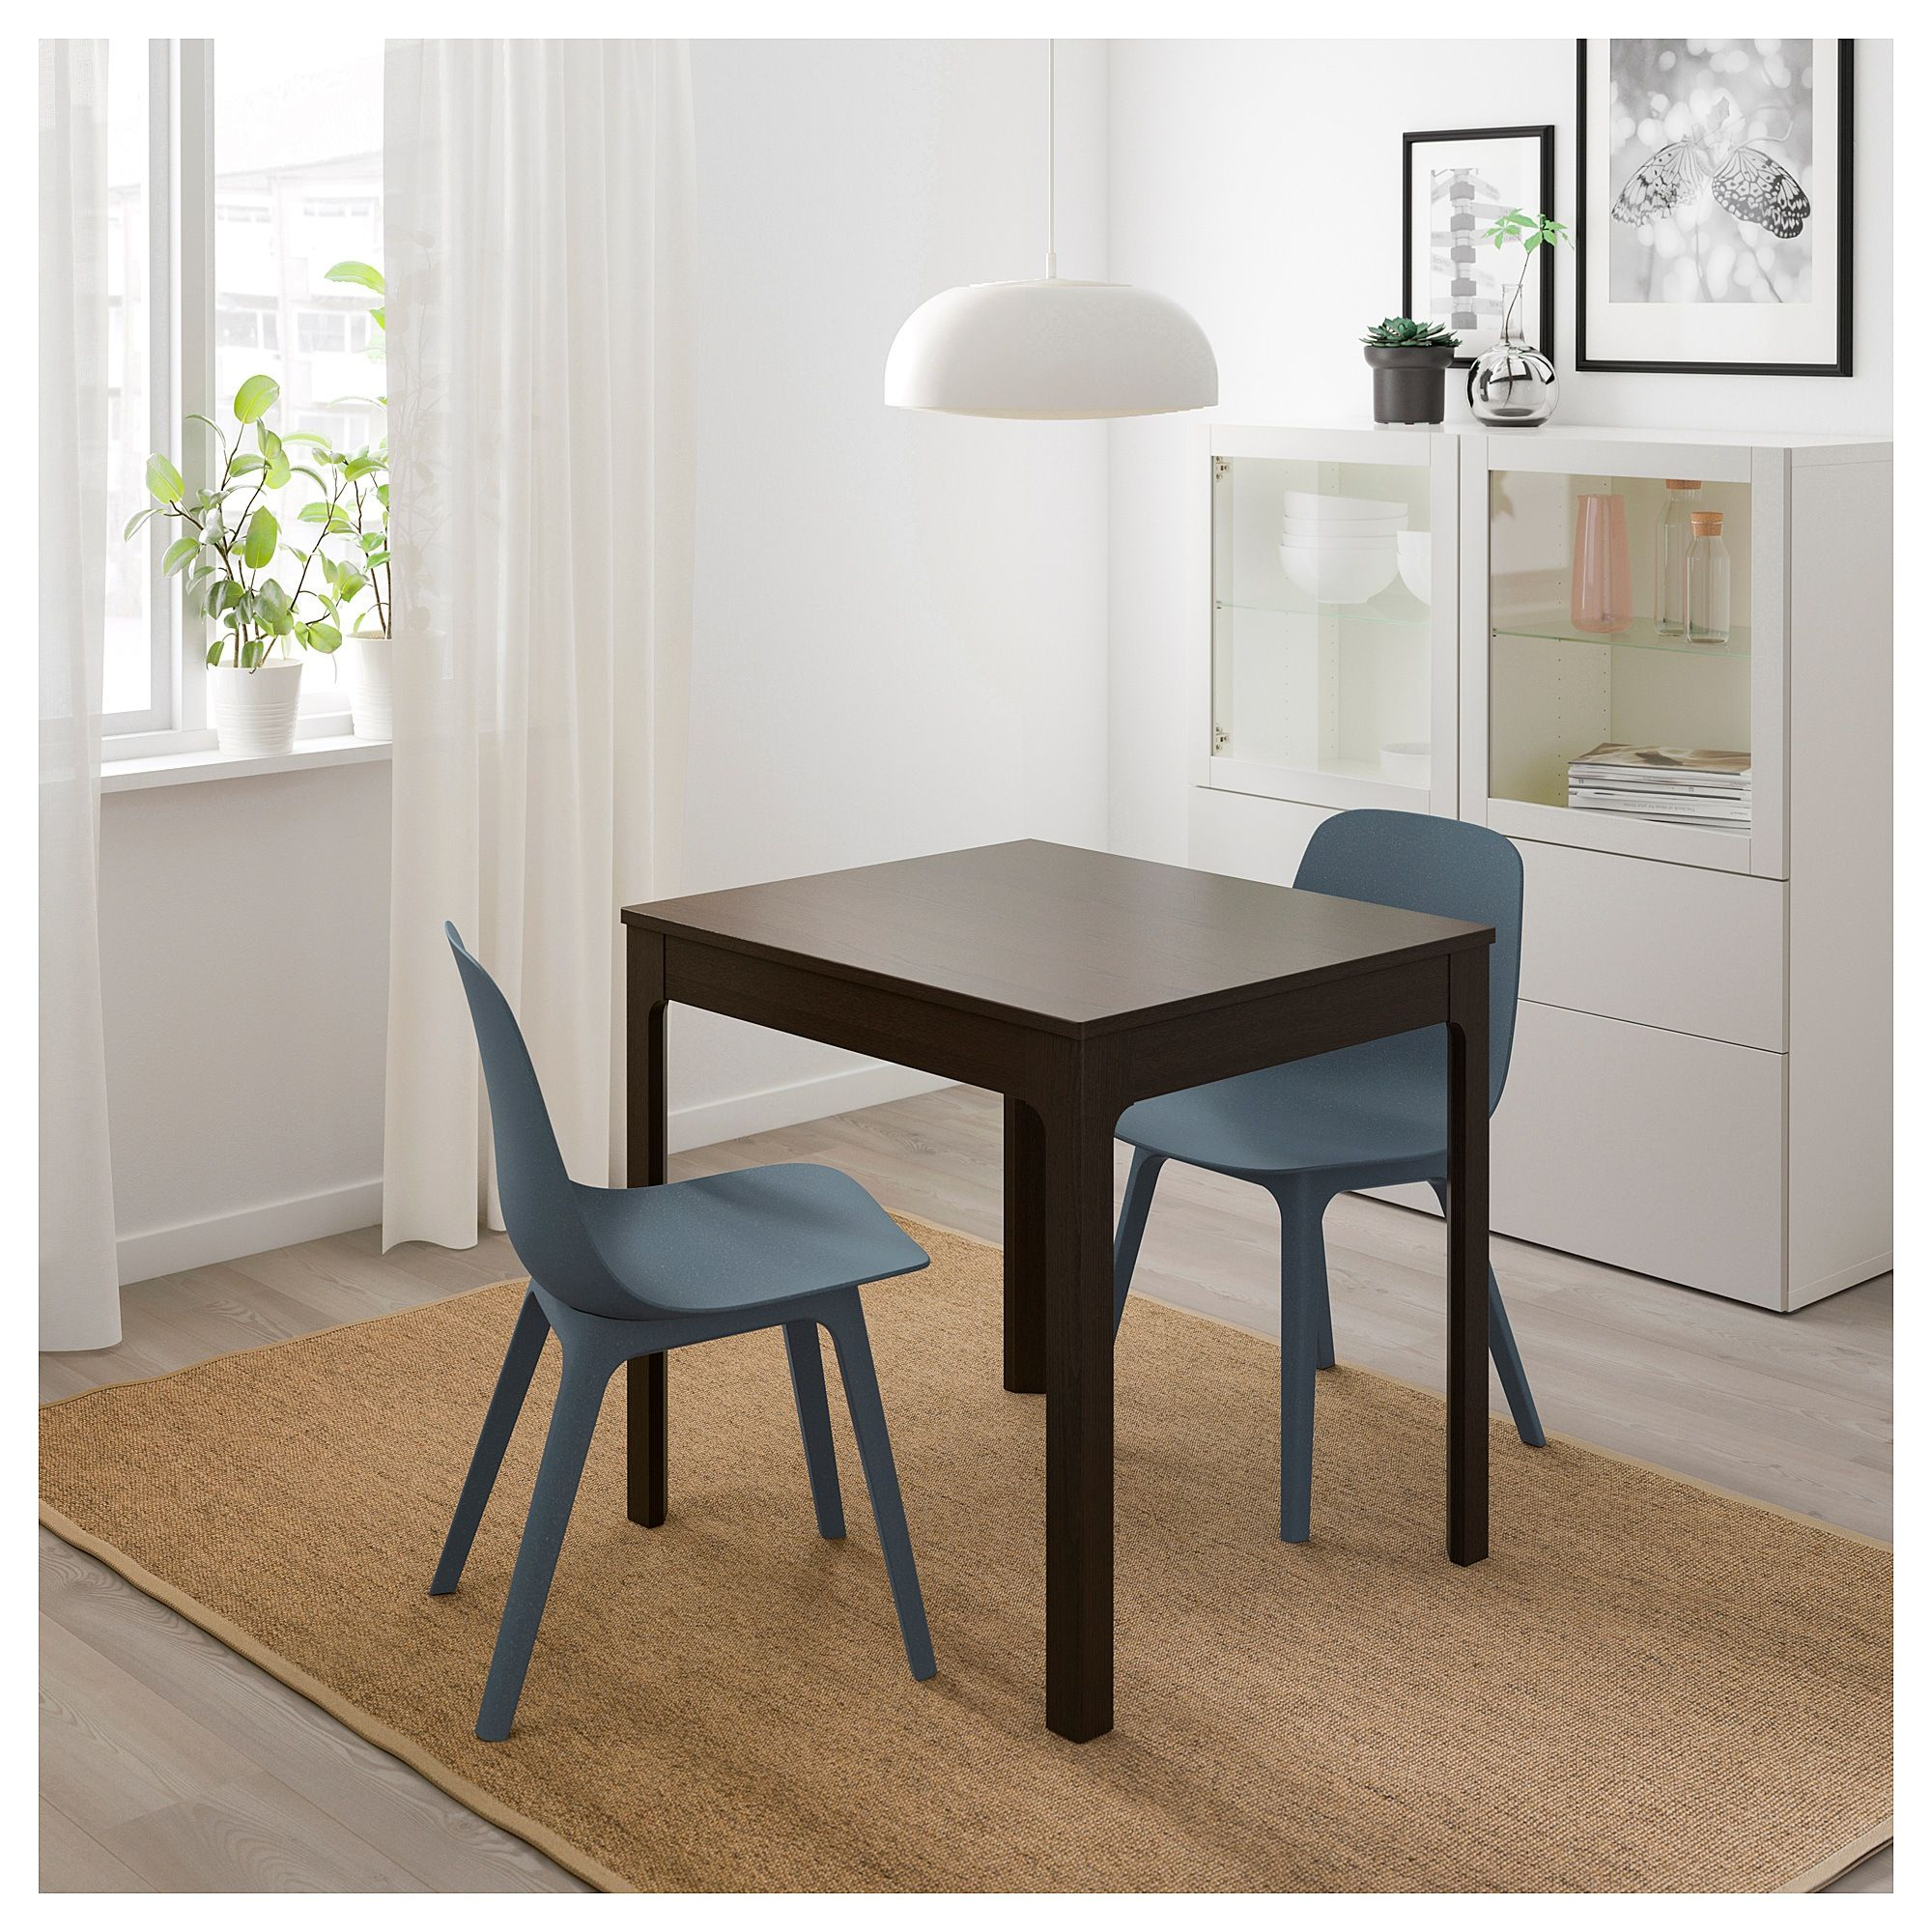 Ikea Ekedalen Extendable Table Dark Brown Products Ikea